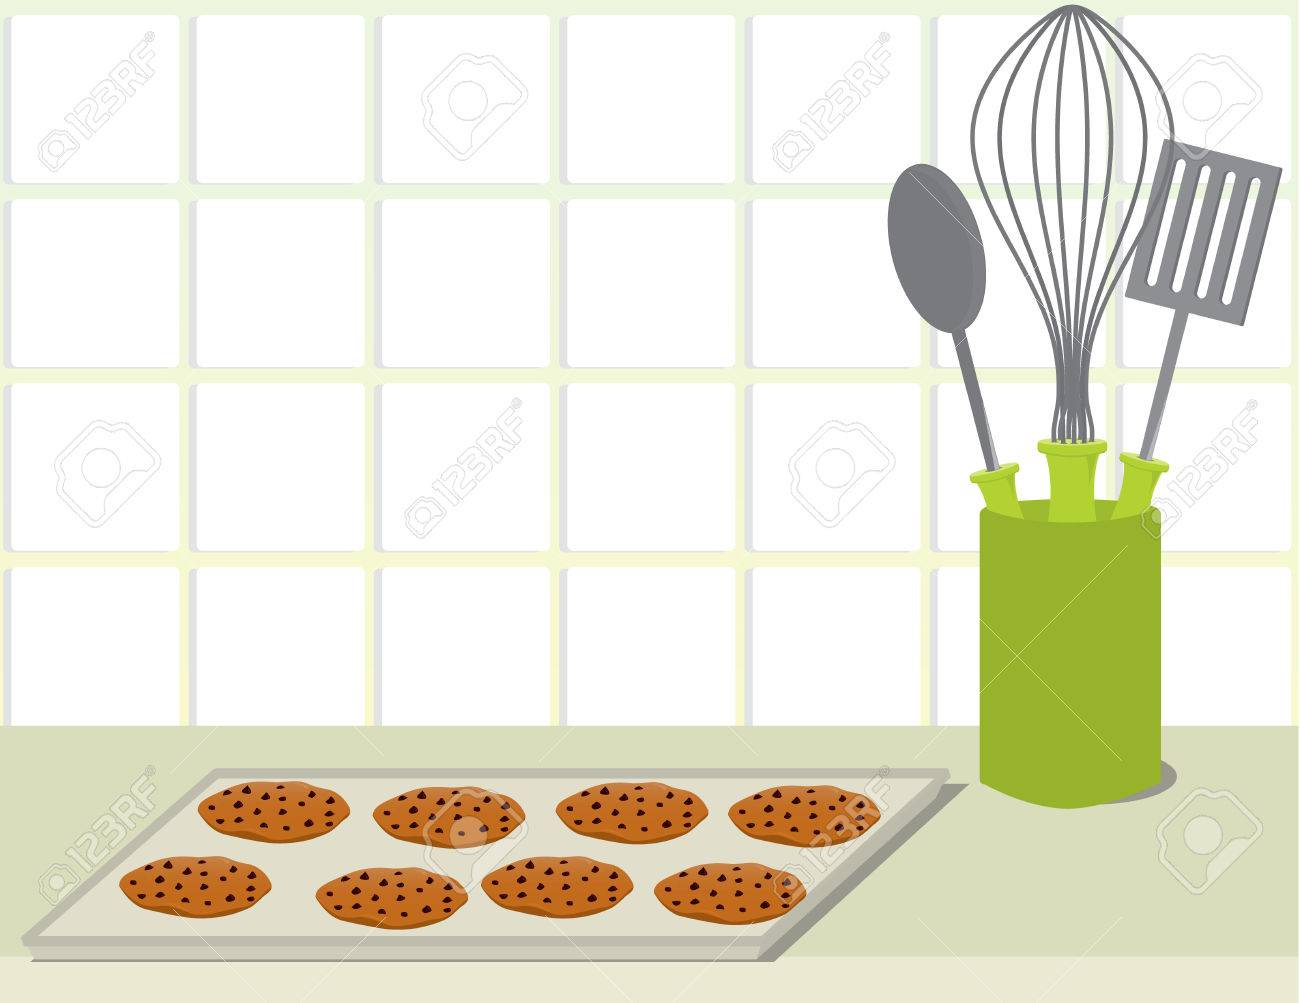 Tray of chocolate chip cookies on a counter with a plate stack and a container of cooking utensils Stock Vector - 6468283